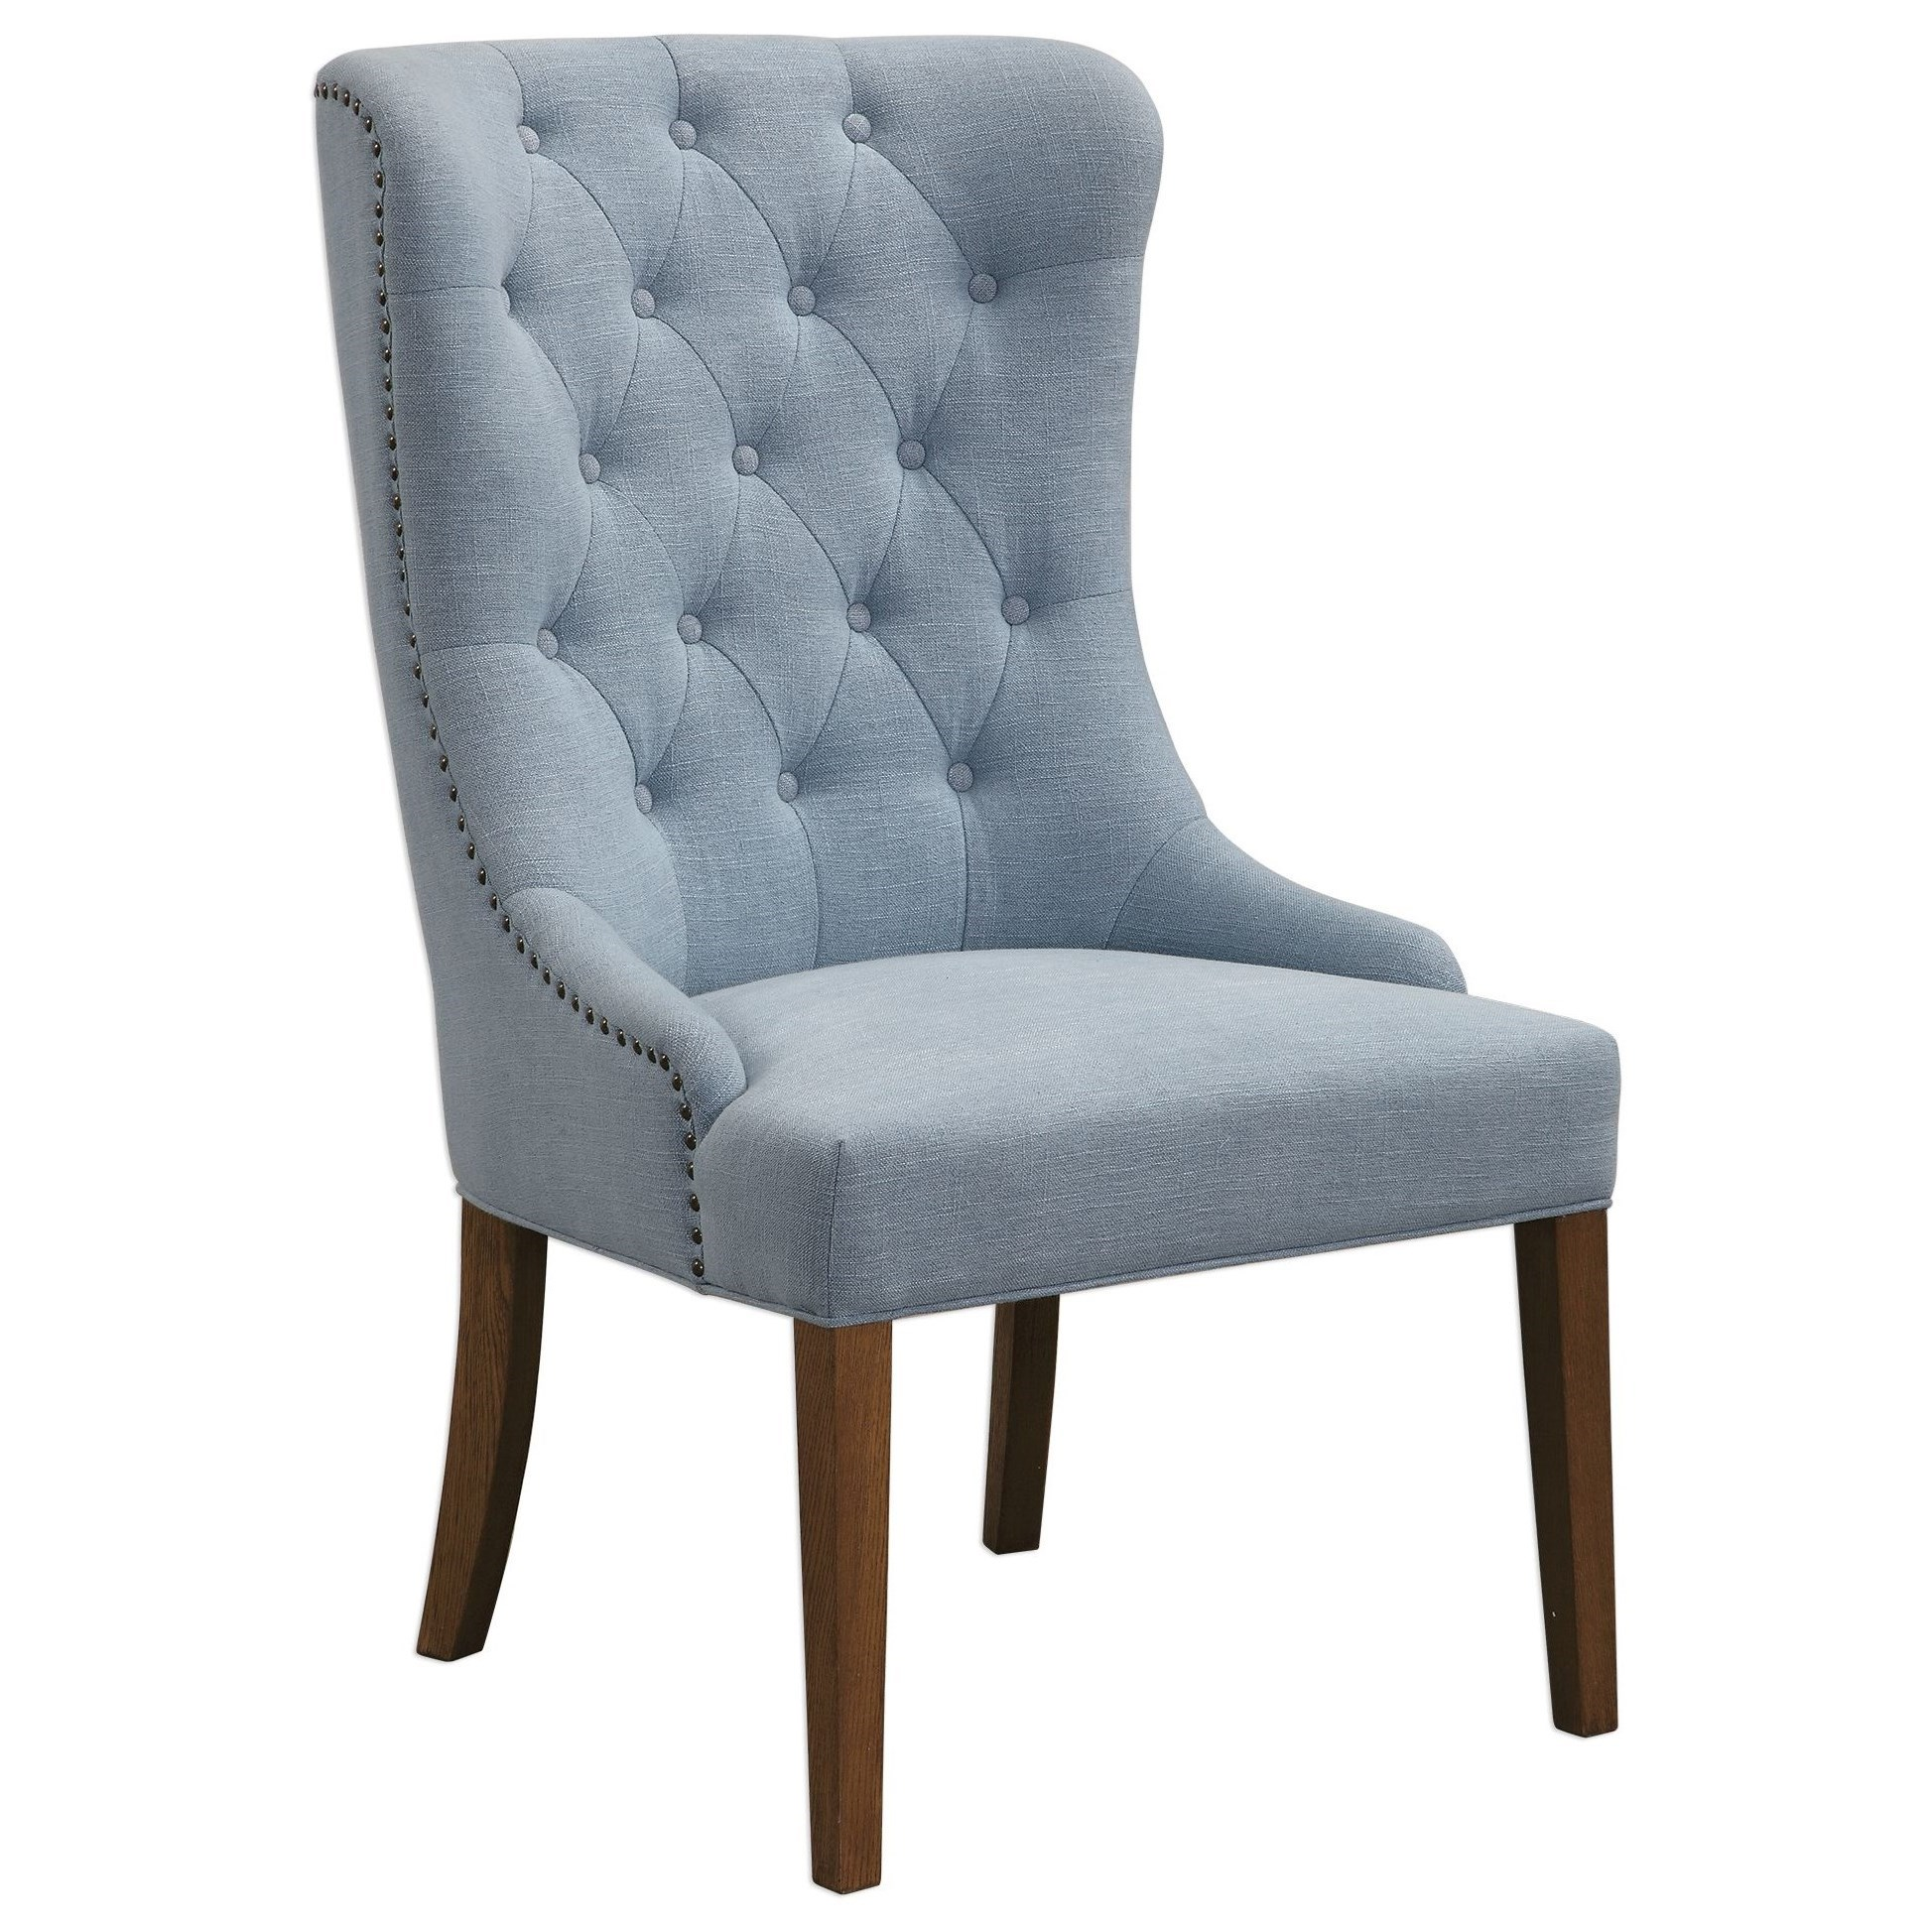 Accent Furniture - Accent Chairs Rioni Tufted Wing Chair by Uttermost at Upper Room Home Furnishings